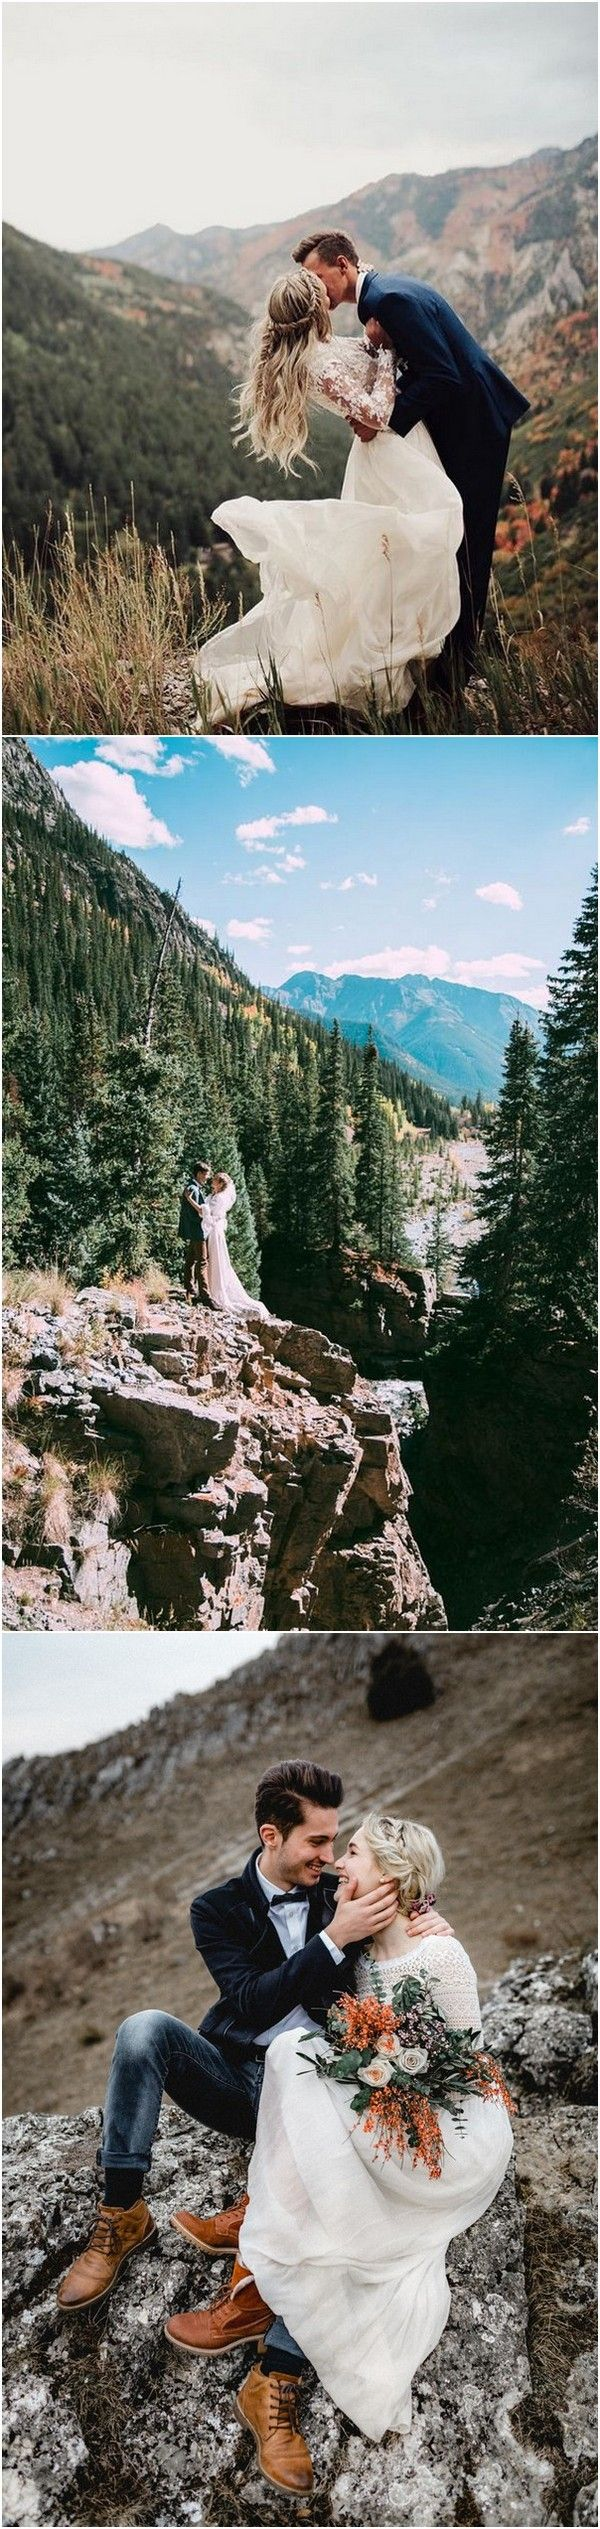 romantic wedding photo ideas in the mountains